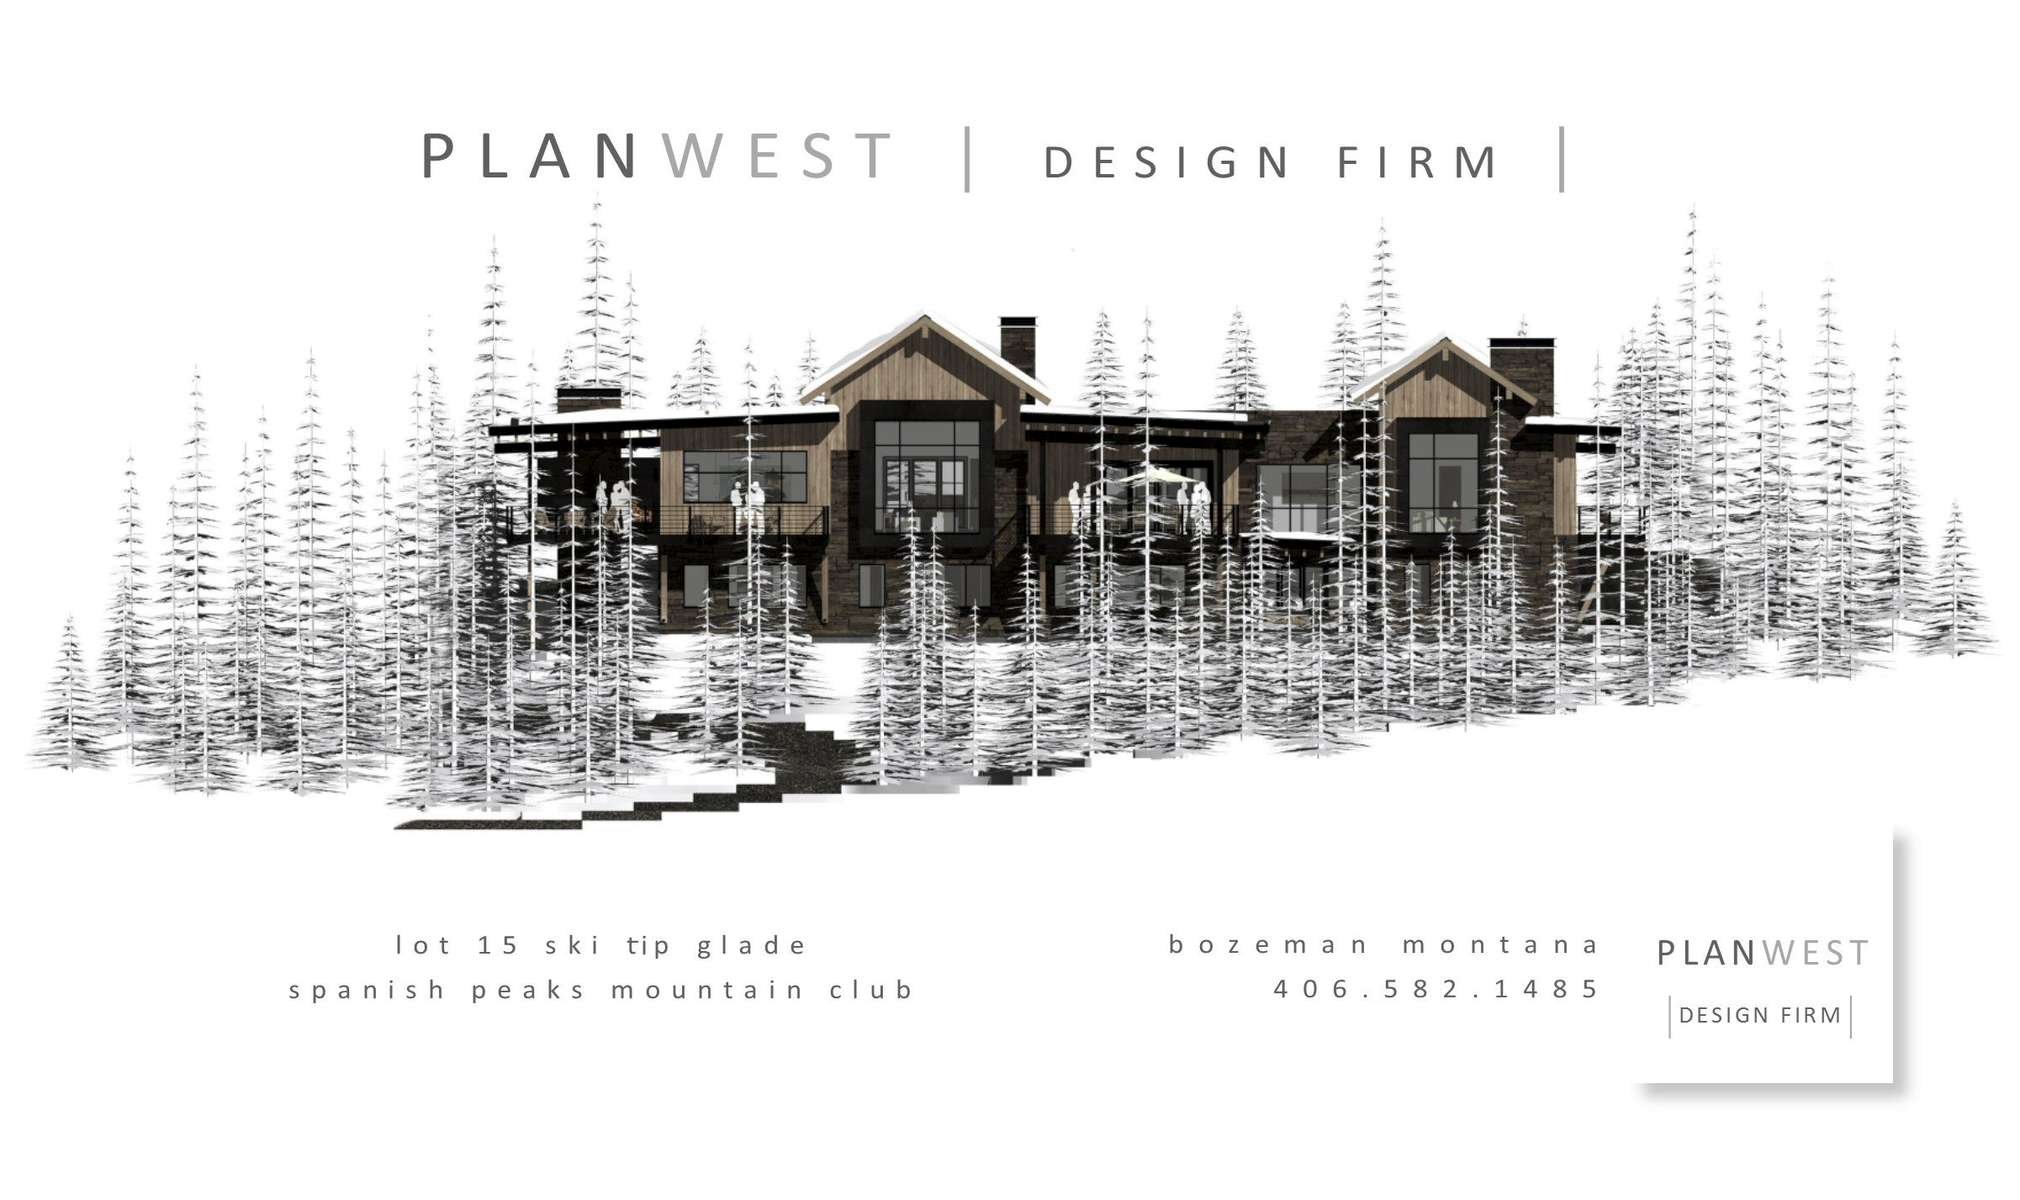 Plan-West-Design-Firm_Projects-in-process-1548